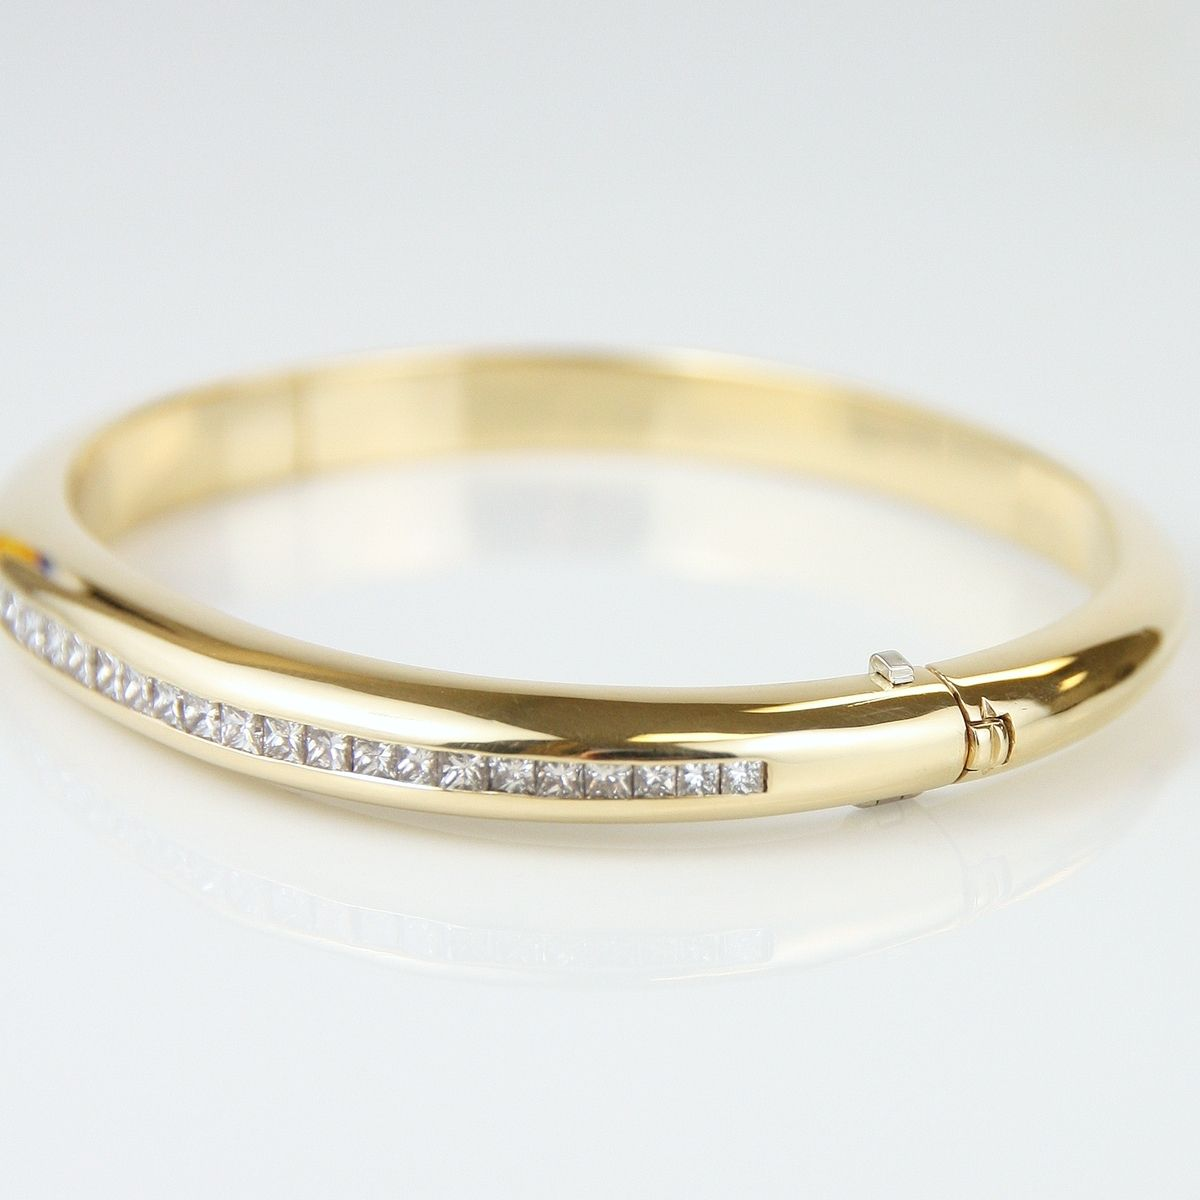 bracelet bracelets bangles diamond gold yellow bangle